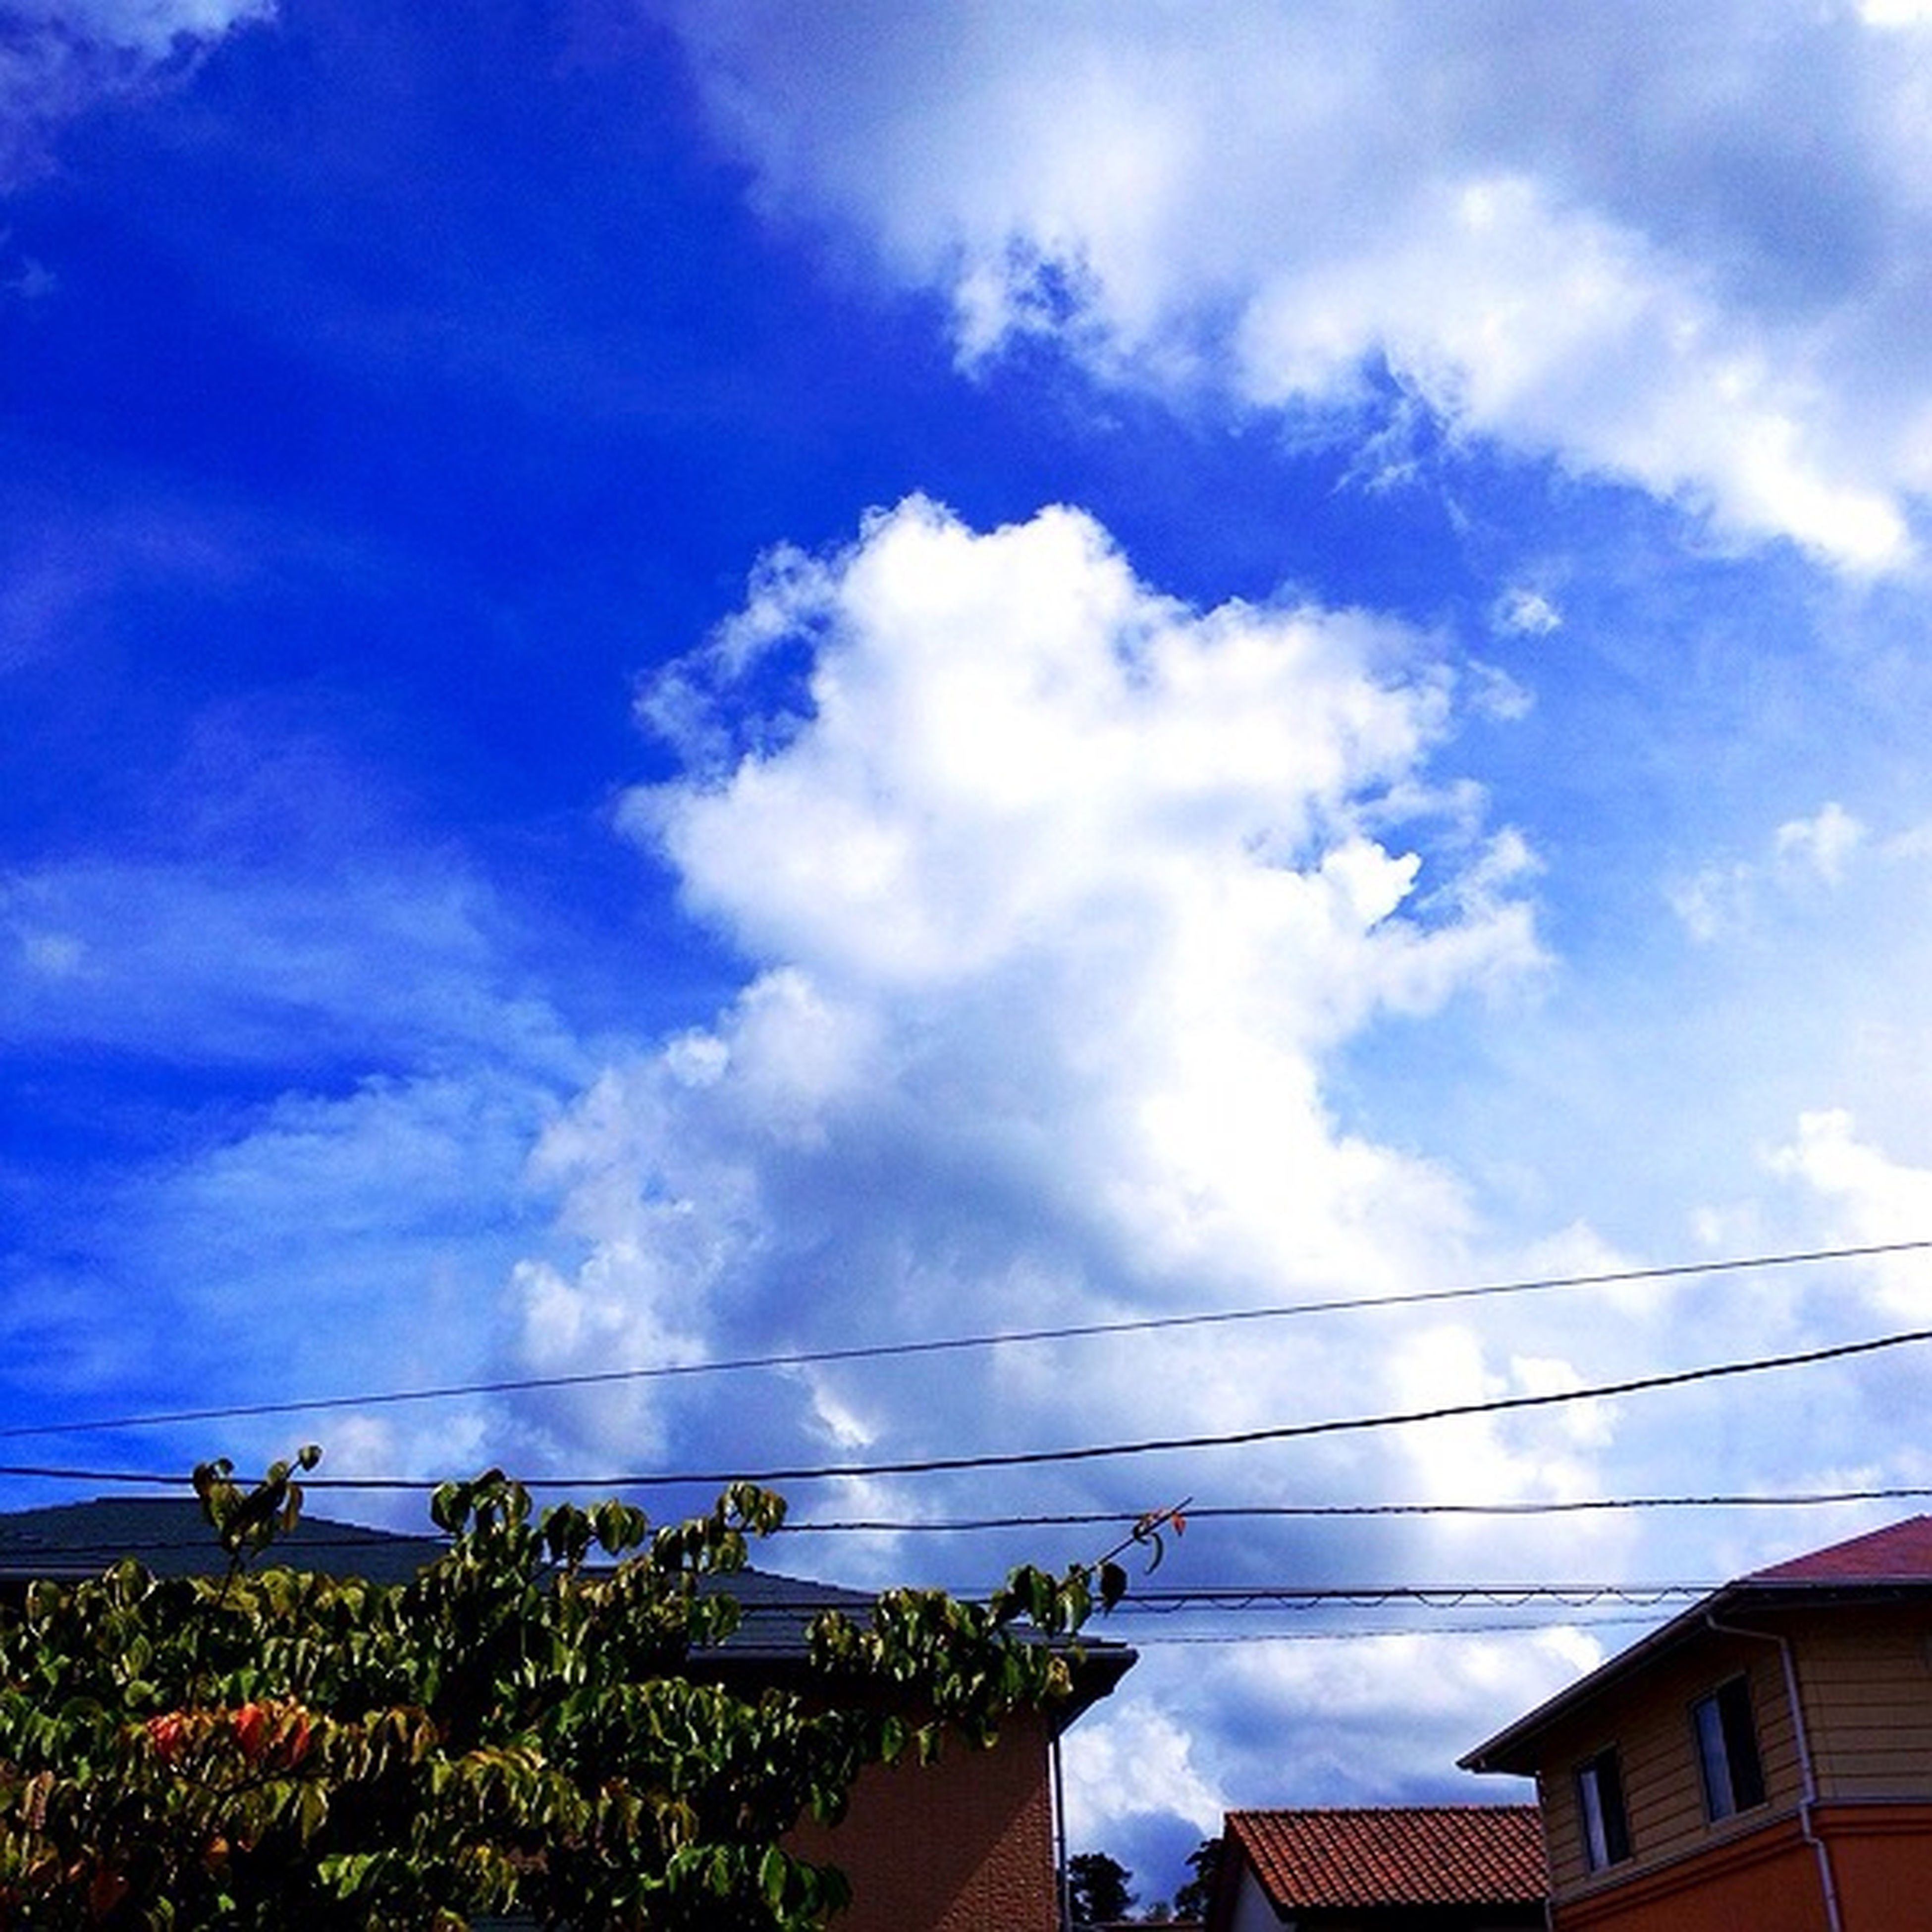 sky, building exterior, built structure, architecture, cloud - sky, low angle view, power line, house, blue, cloud, cloudy, cable, residential structure, residential building, connection, tree, electricity pylon, nature, day, outdoors